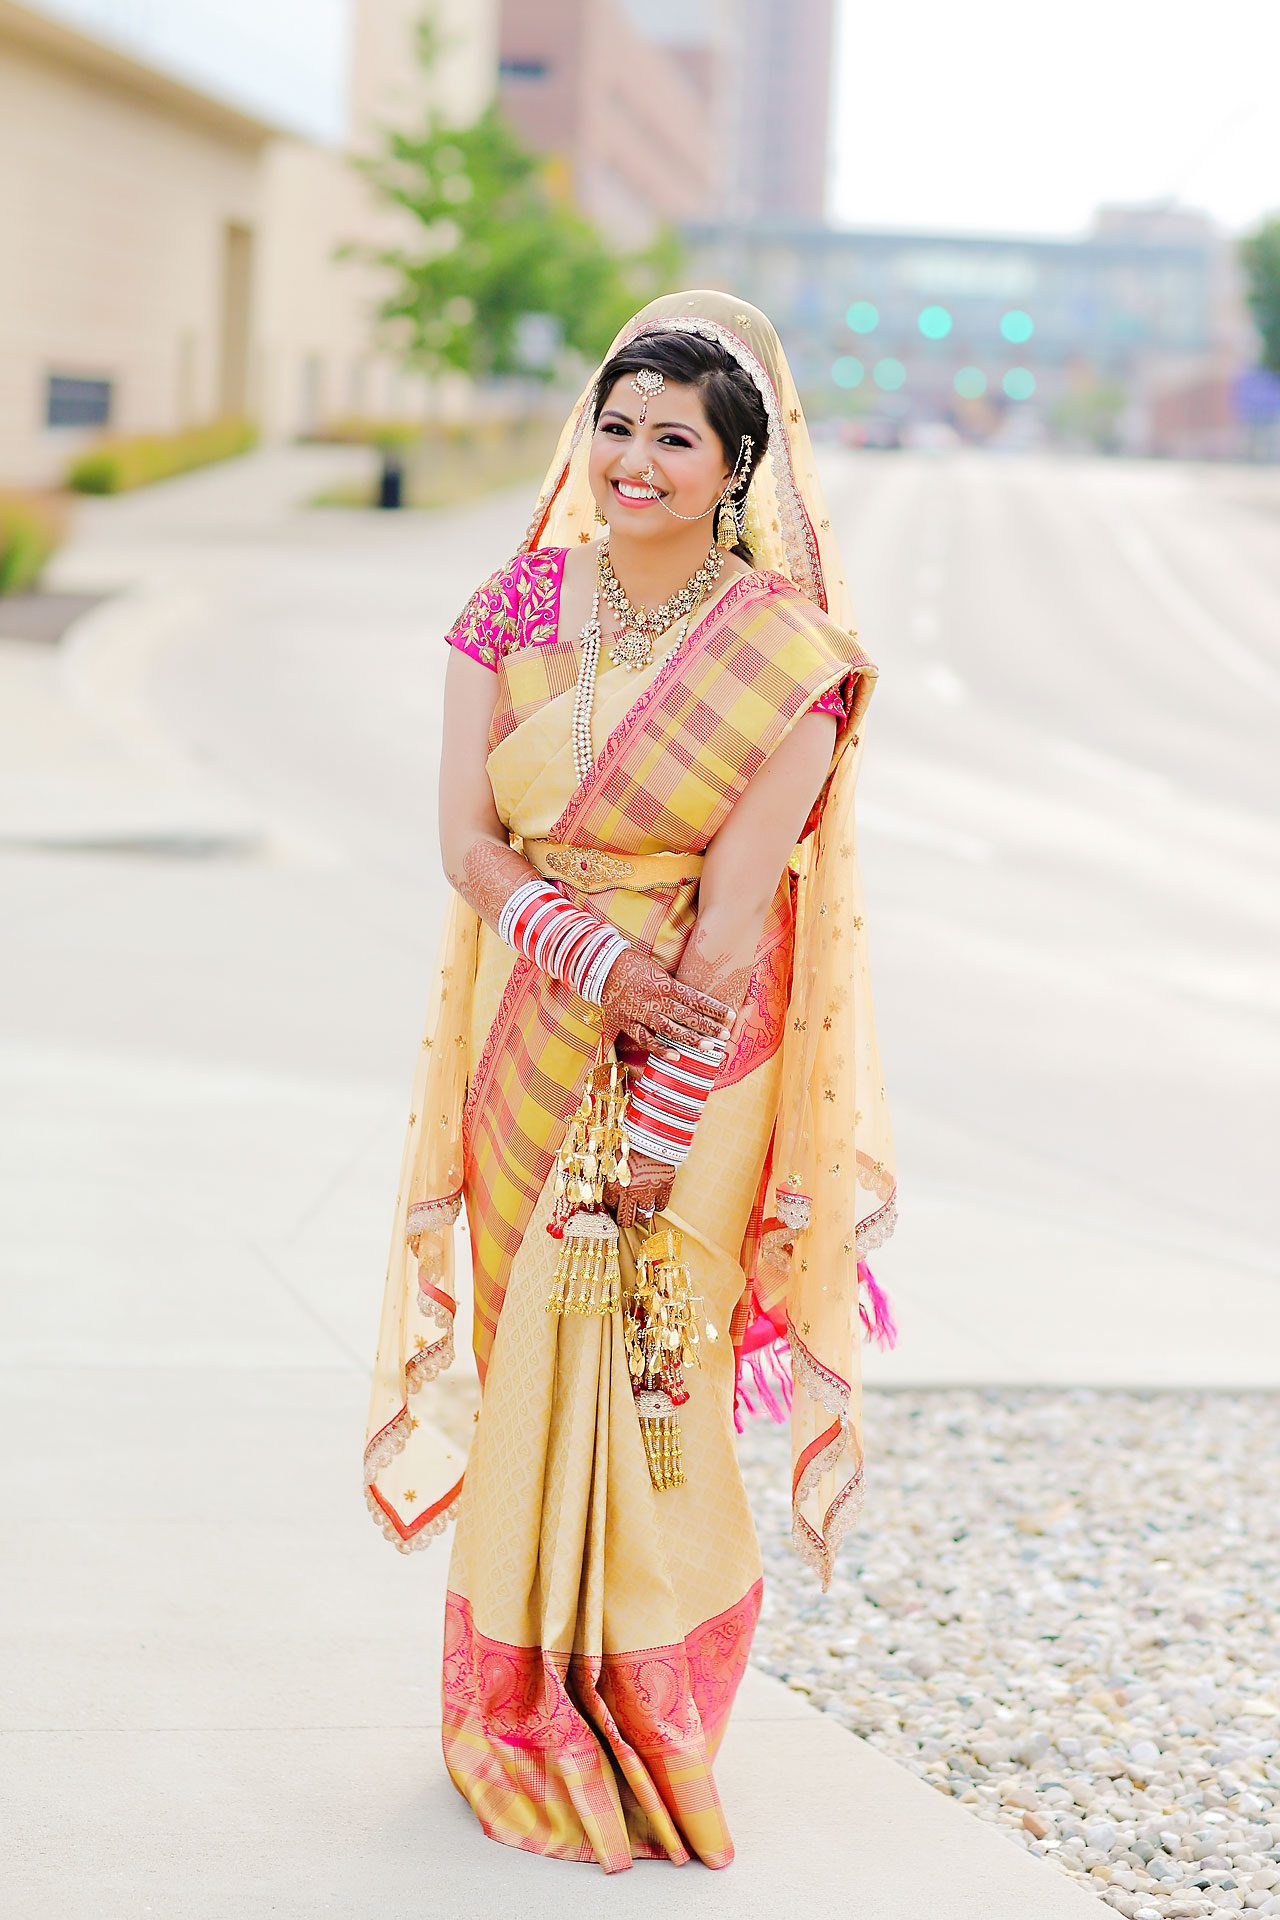 069 Vandana Anurag Indianapolis Indian Wedding